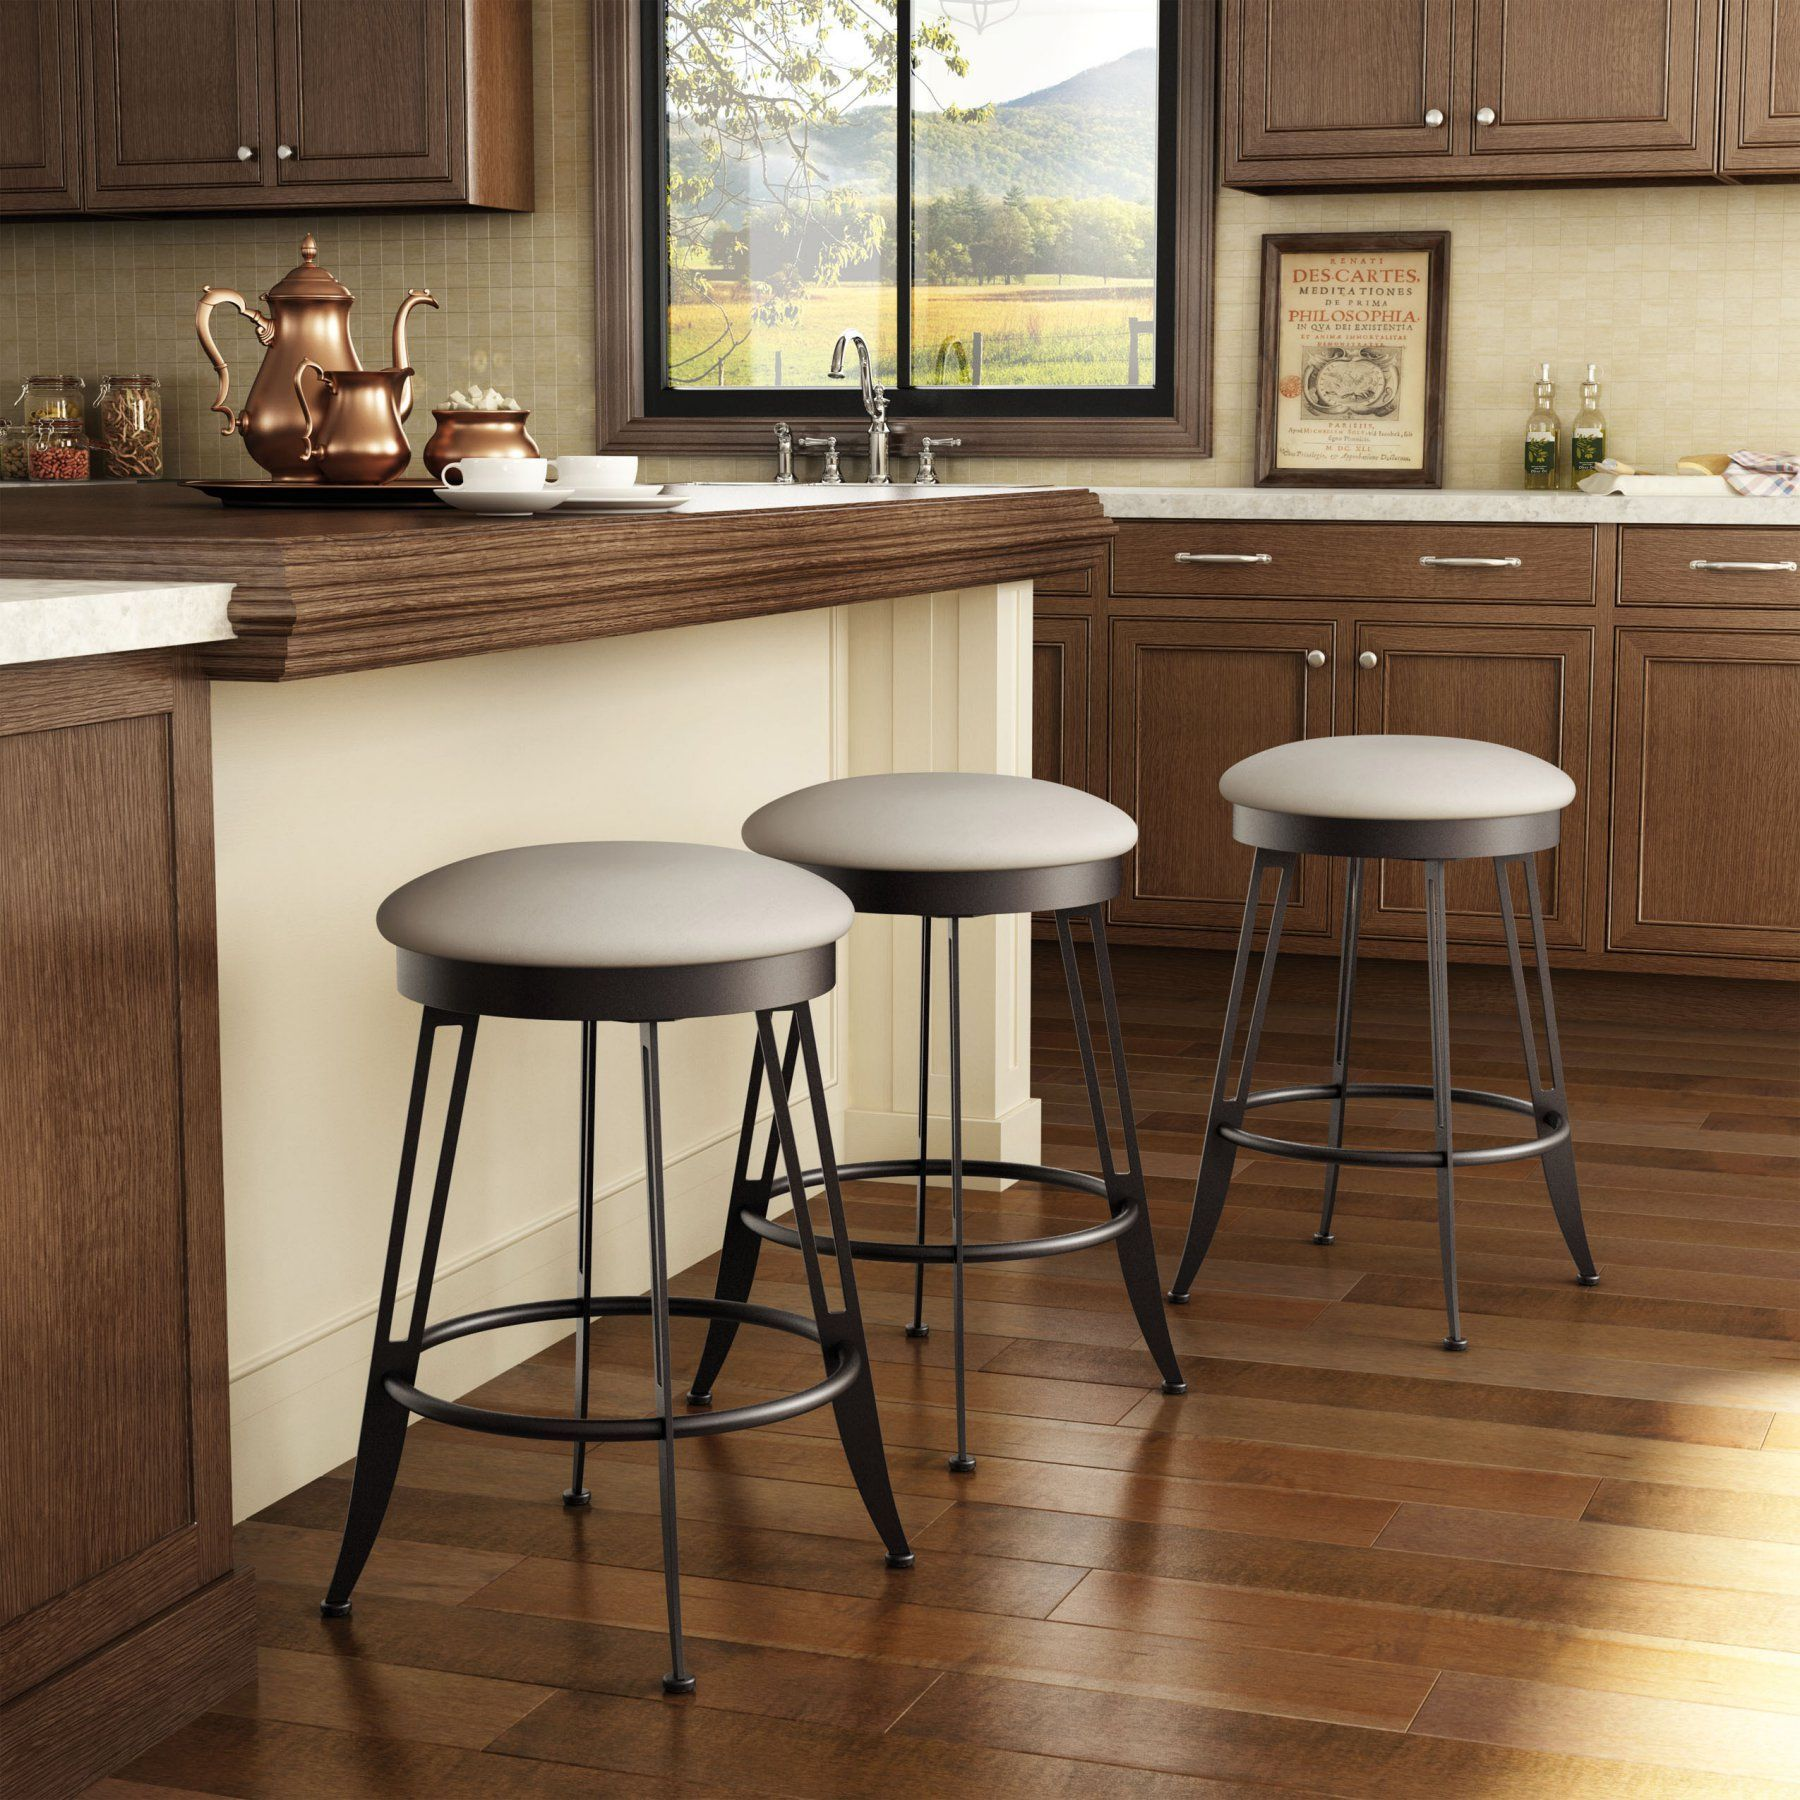 Amisco Phylo Backless Swivel Bar Stool 30 in. - 42402-30WE/1B2403F4